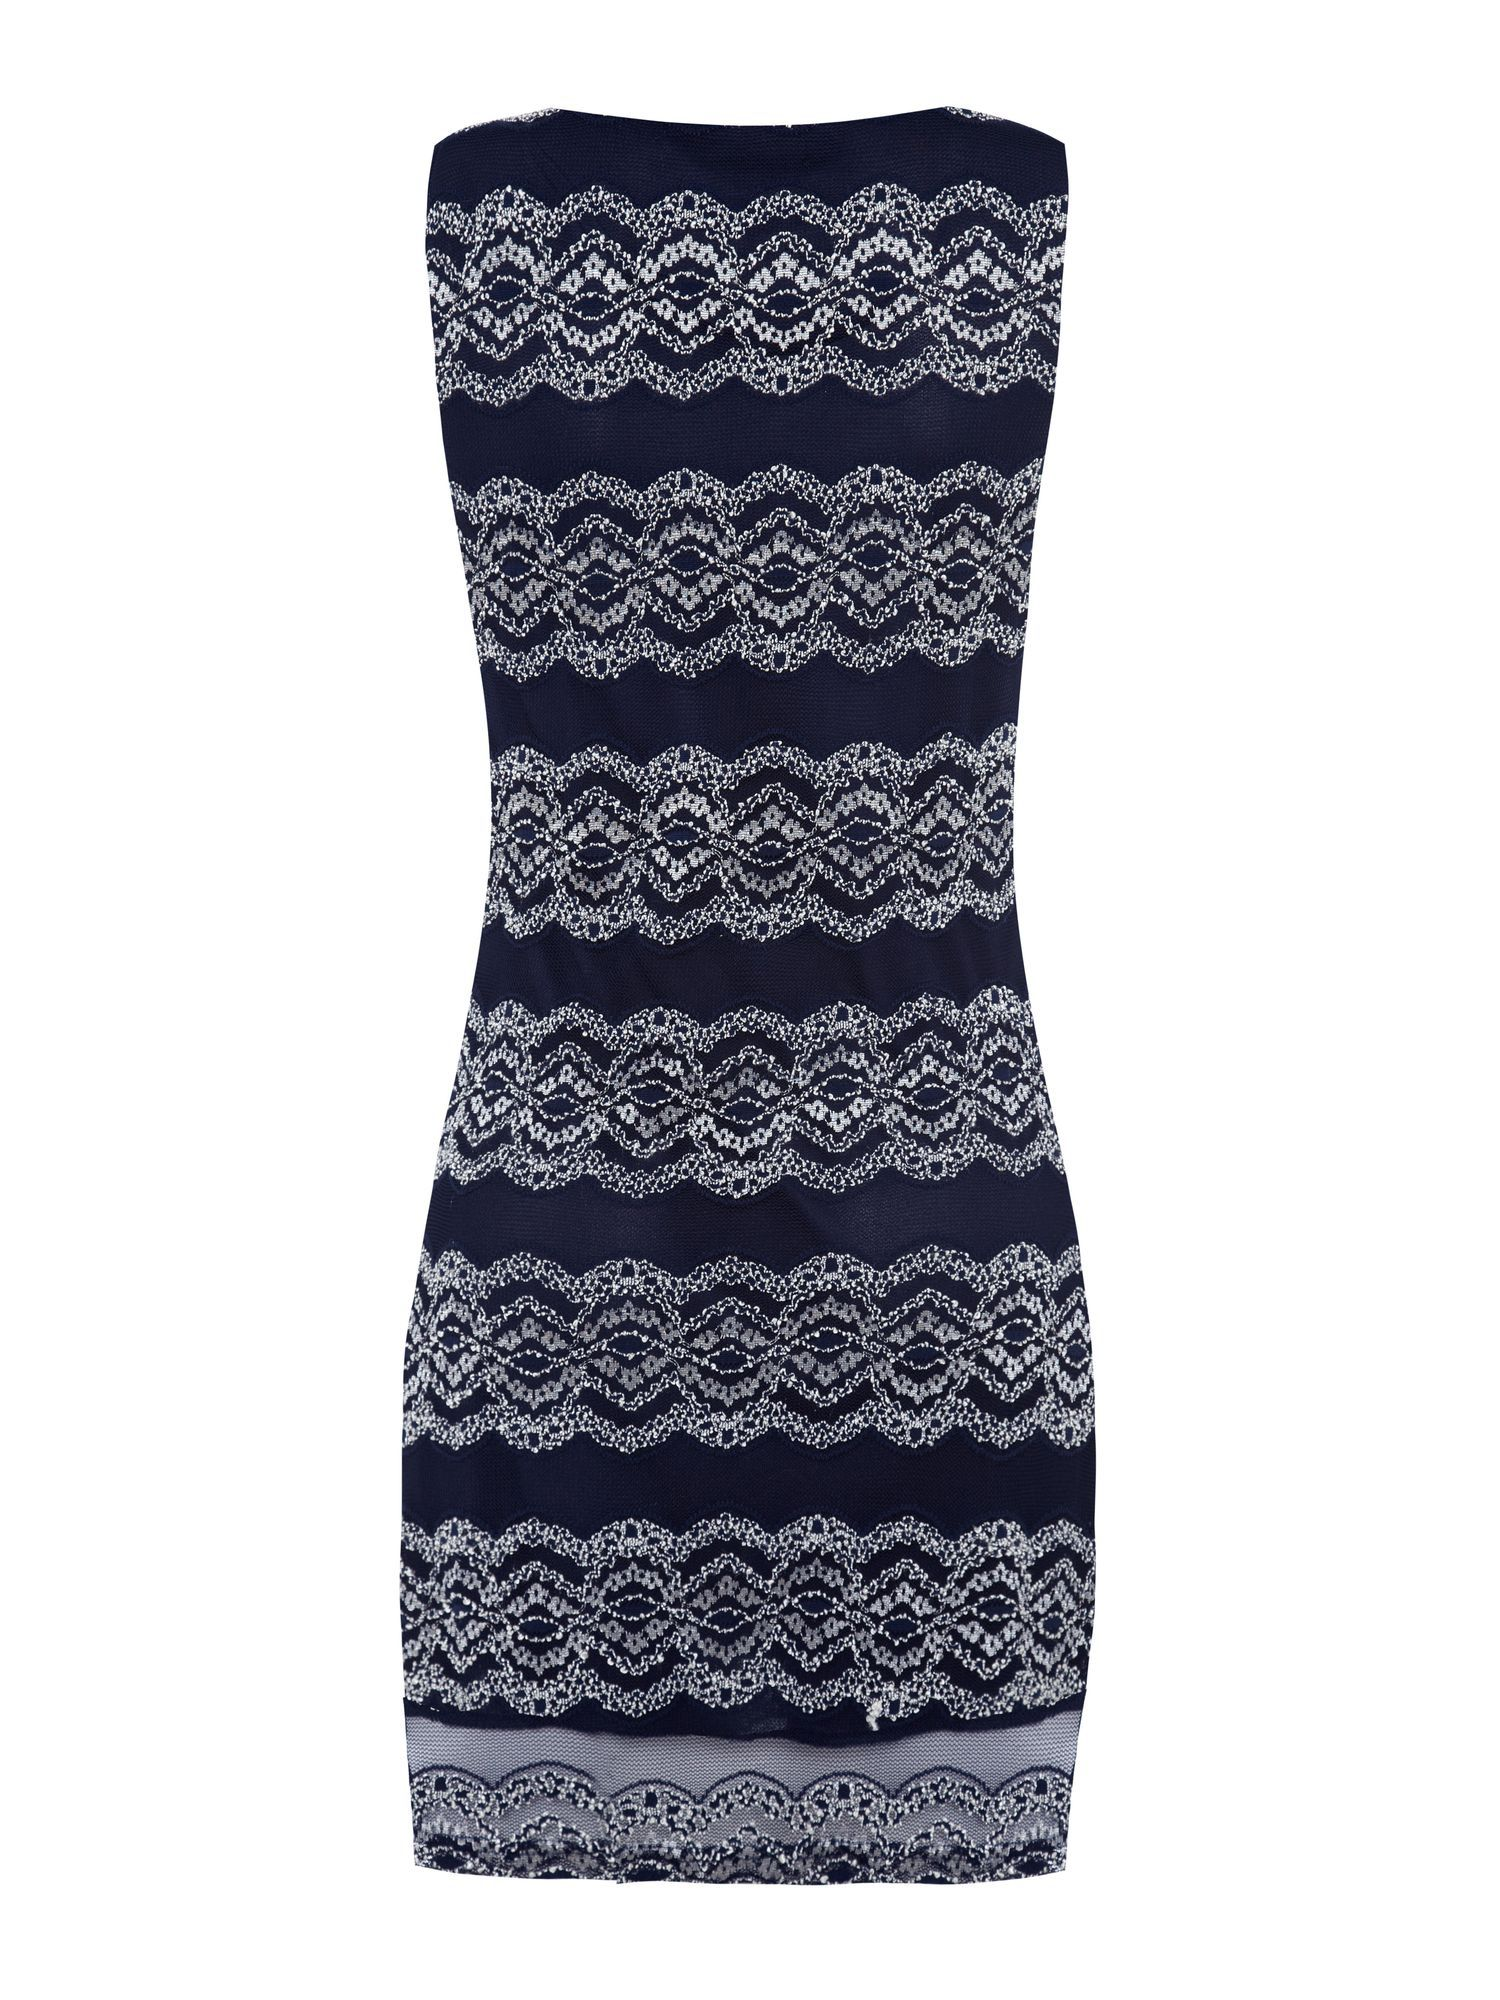 Lace detailed bodycon